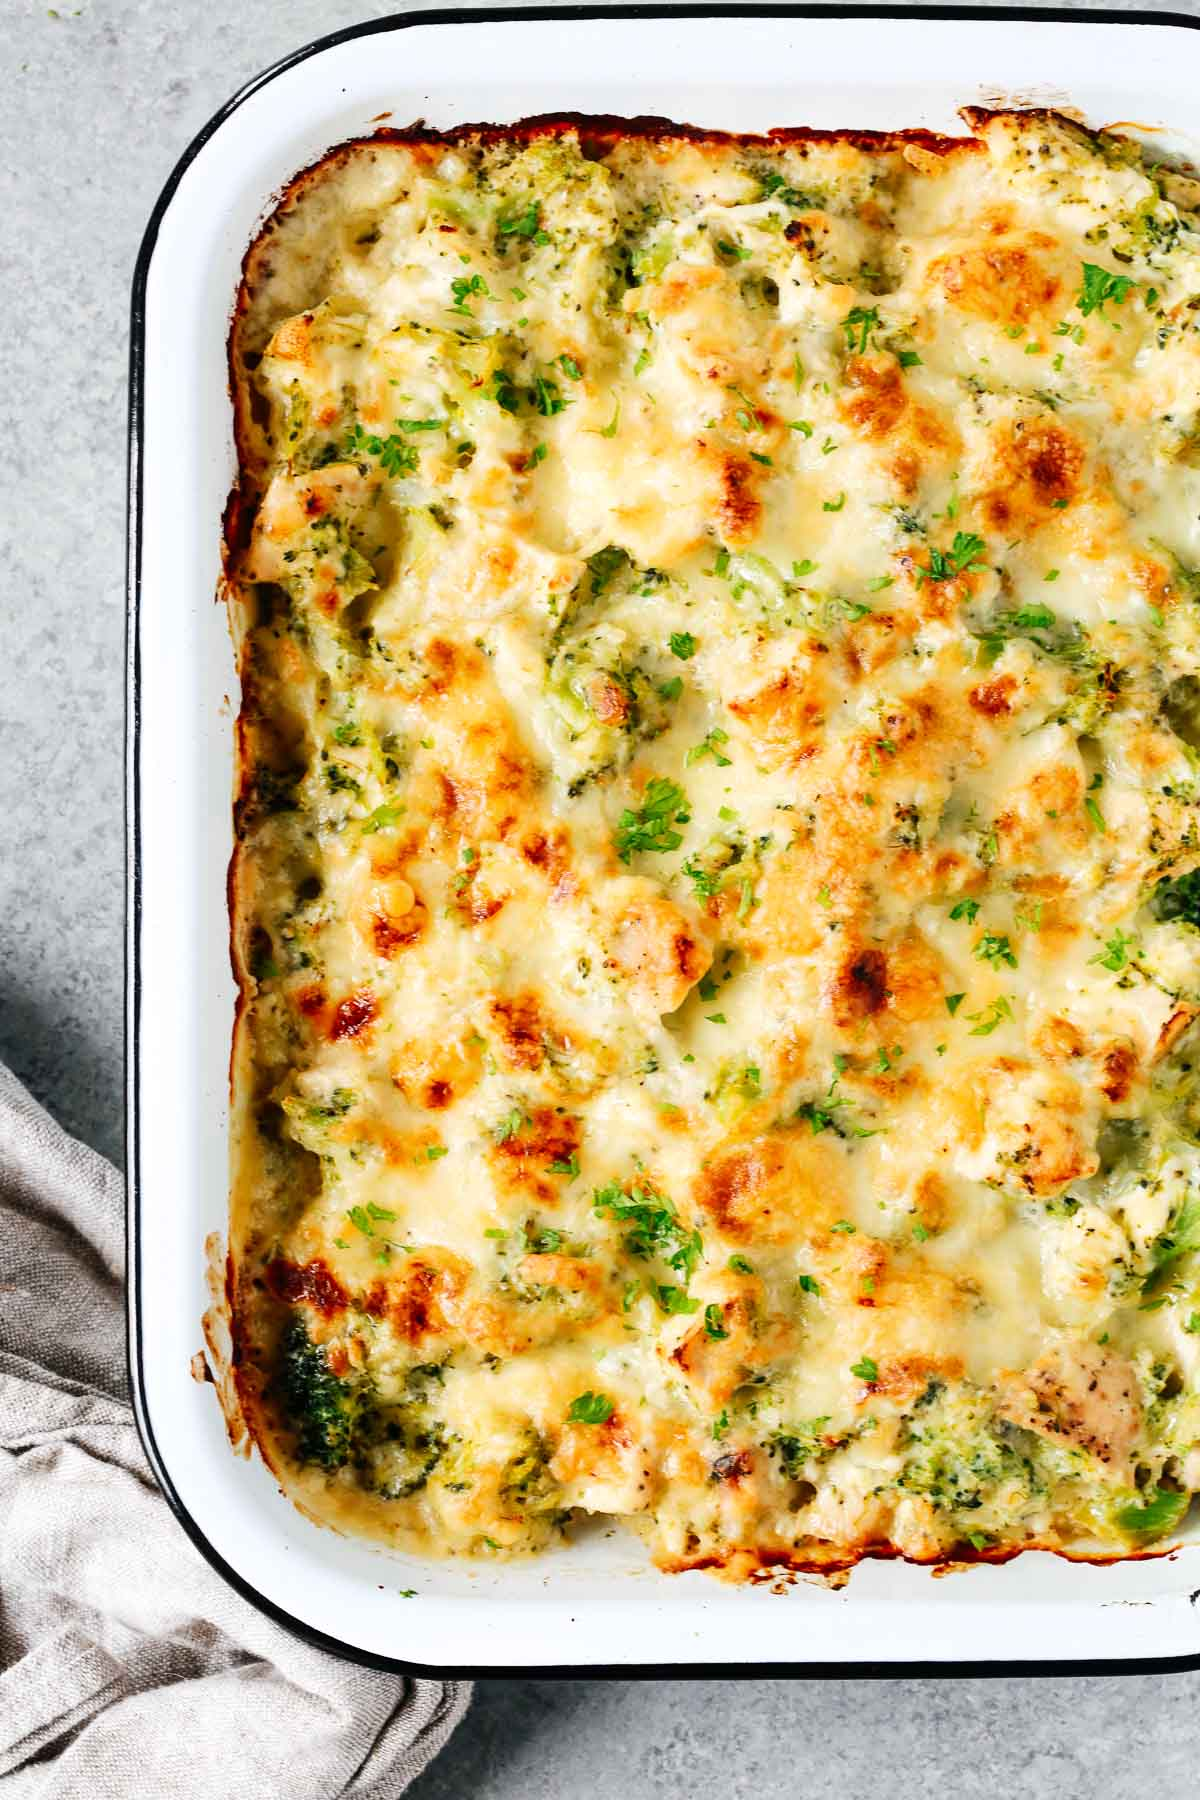 close up of a broccoli and cauliflower casserole